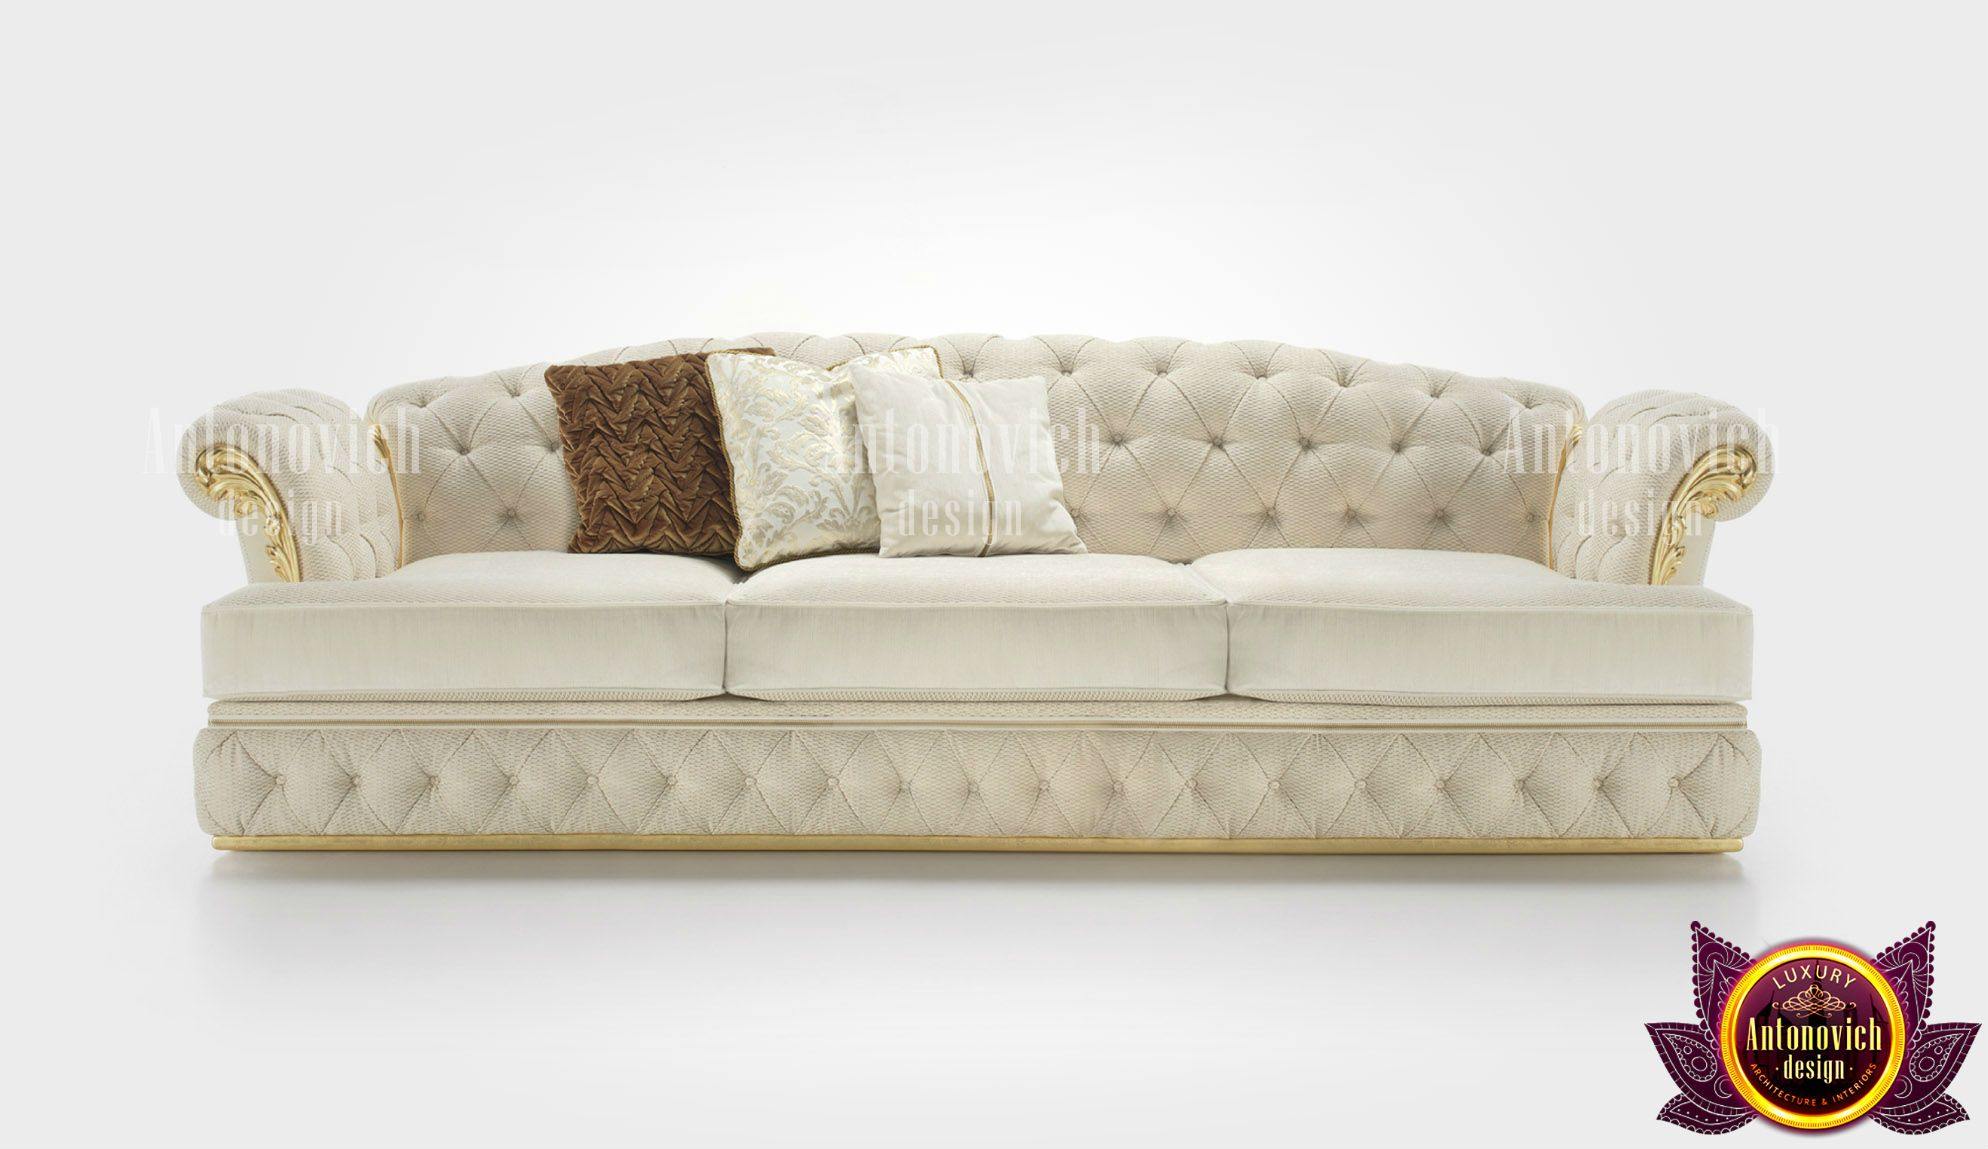 Elite Modern Sofa In The House Is Not Only An Indicator Of The Status Of The Owners And An Object Of Aesthetic Pleasu Sofa Design Exclusive Furniture Soft Sofa